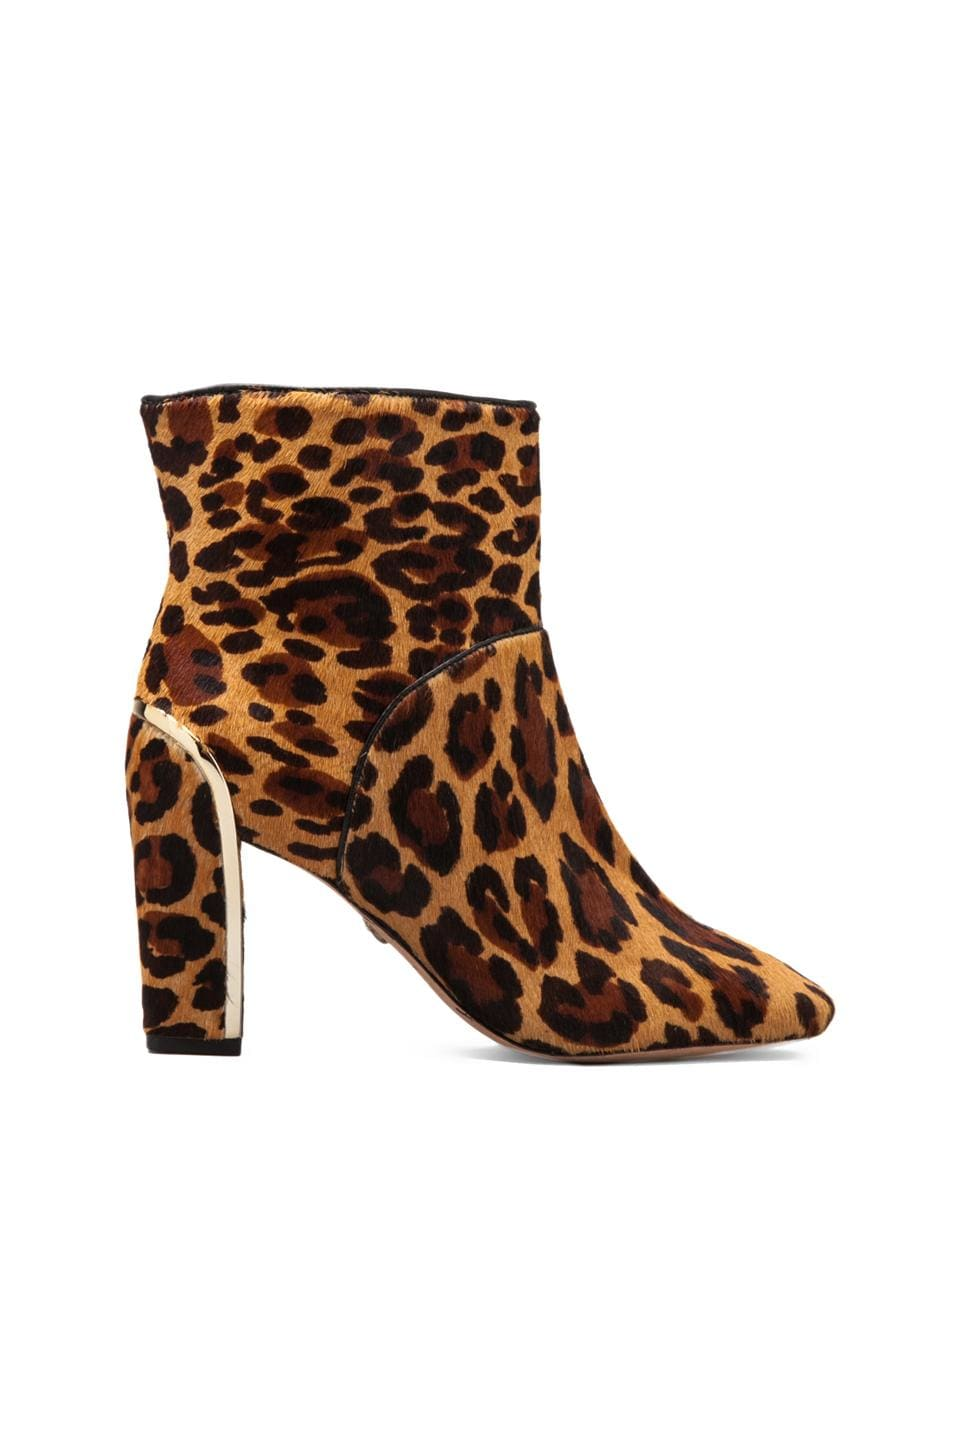 Diane von Furstenberg Glenda Bootie with Calf Hair in Camel Leopard